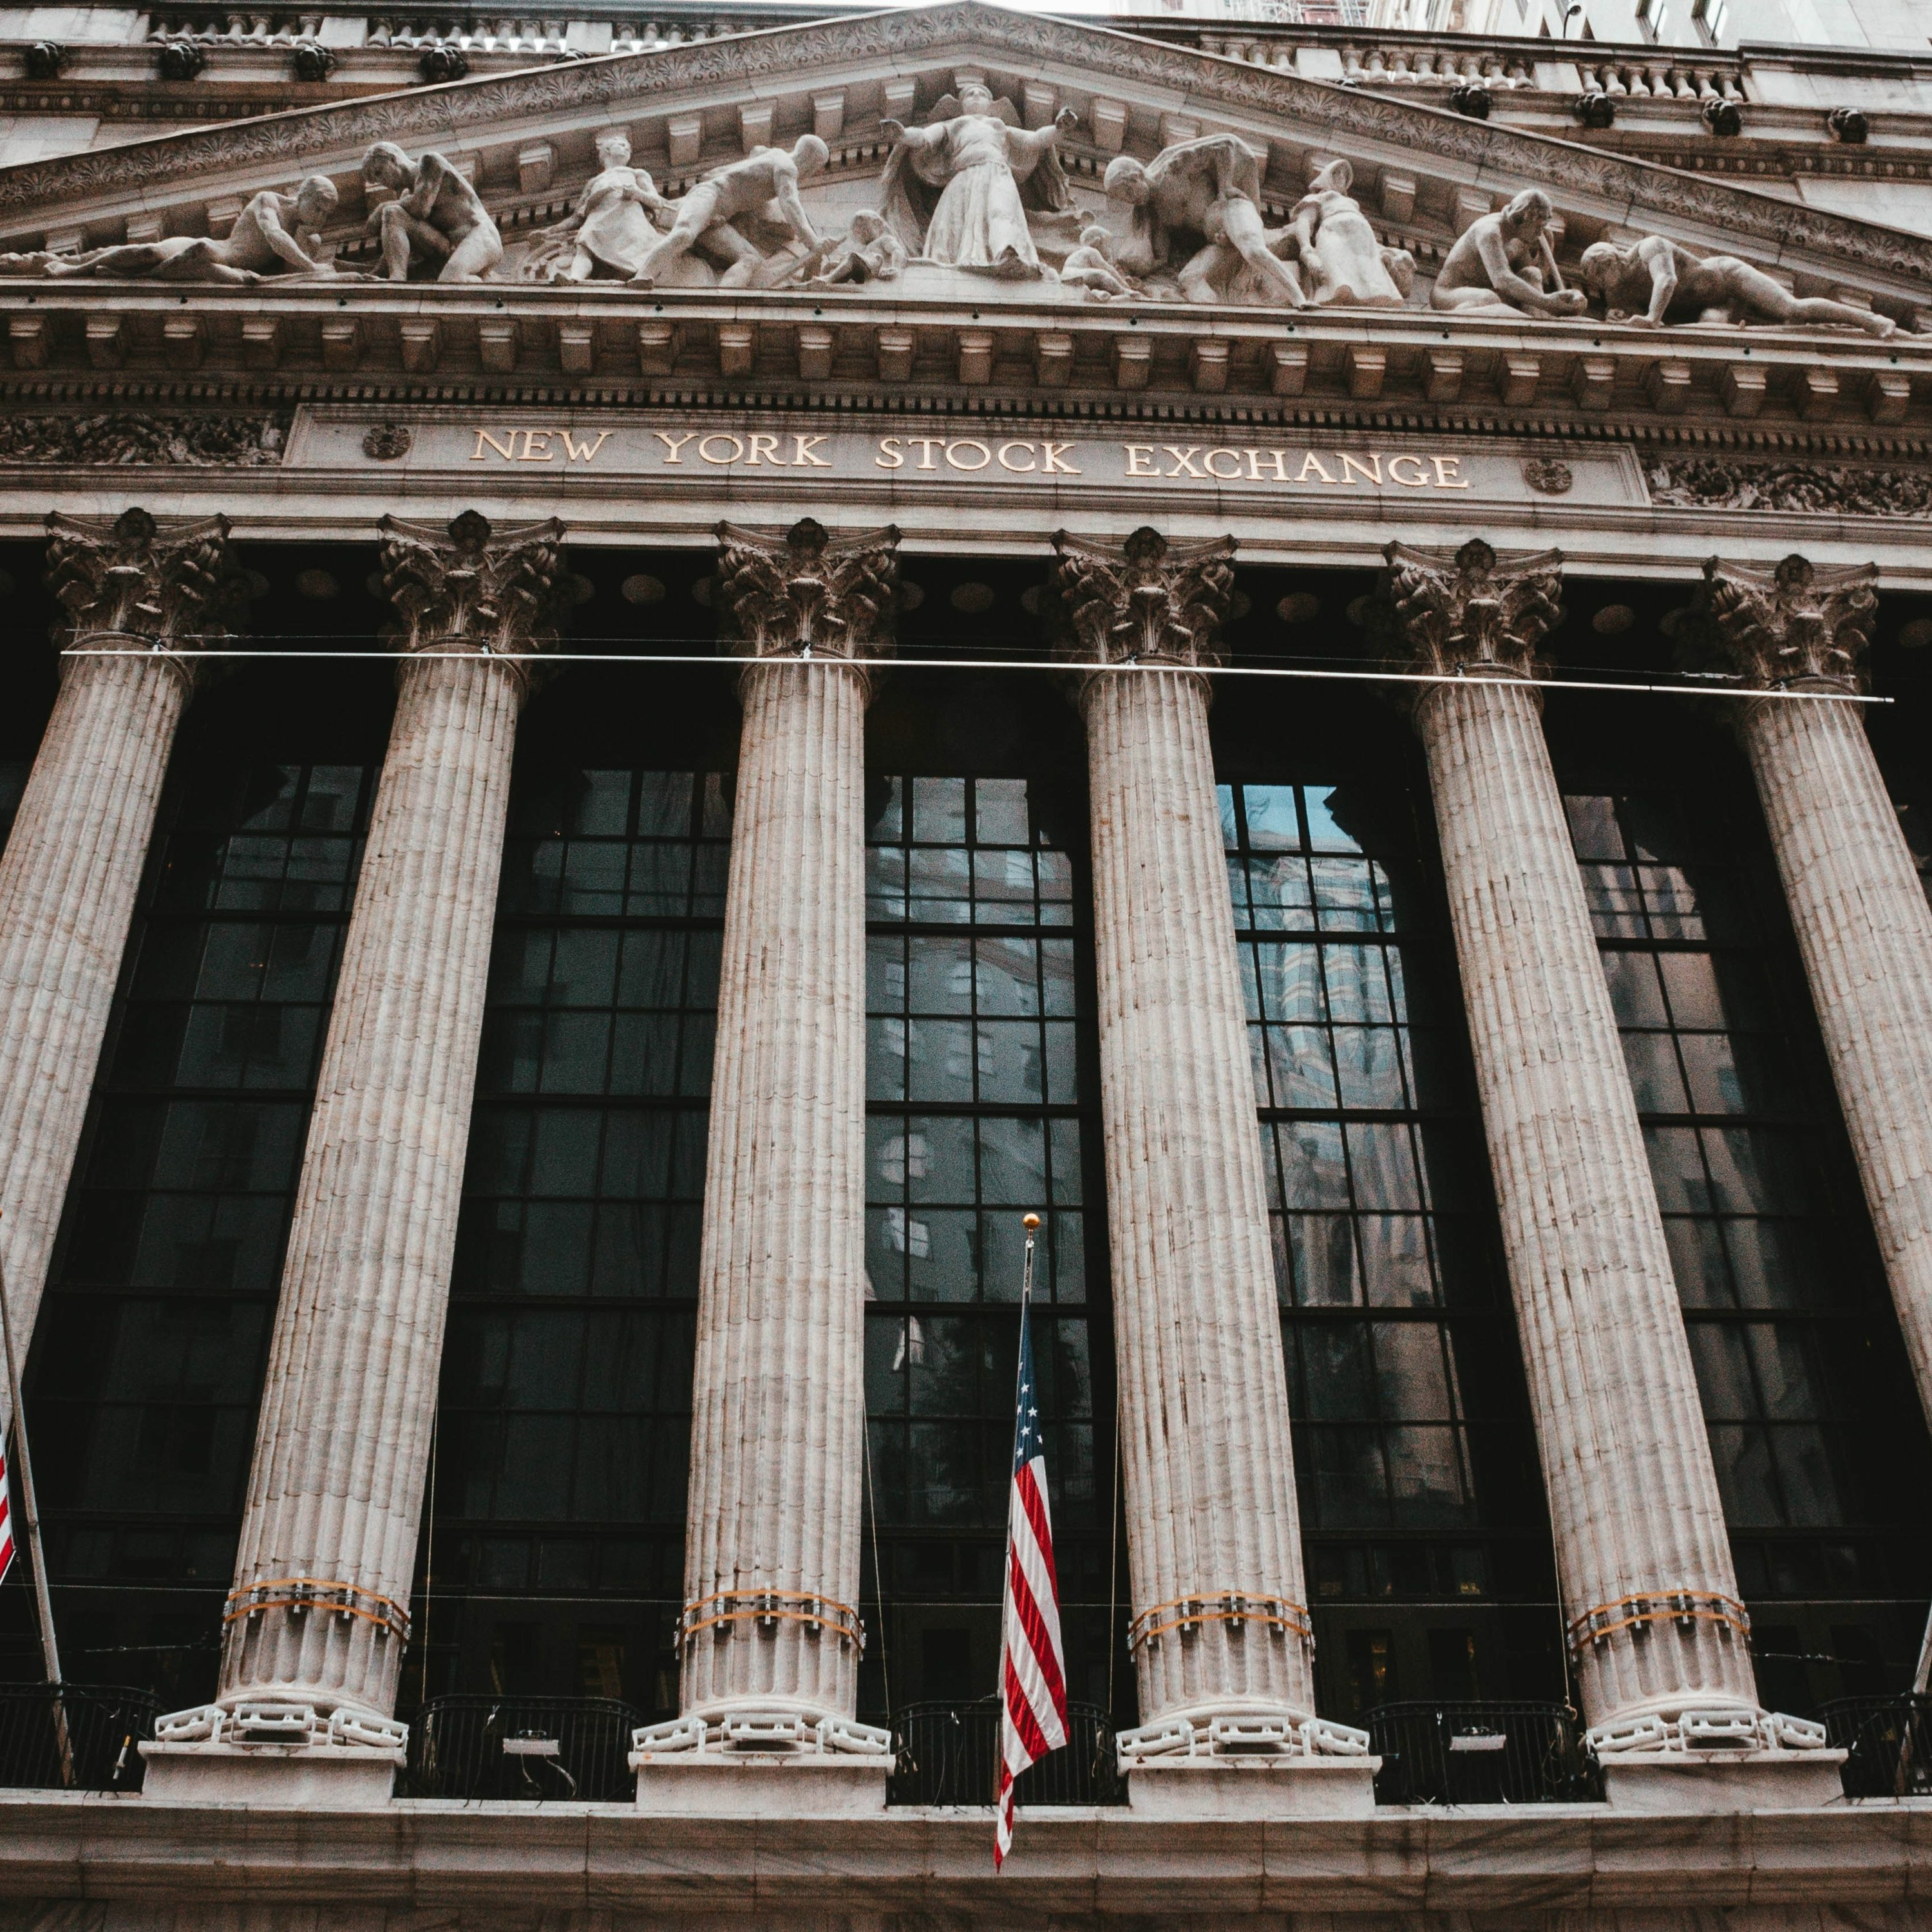 Jumia's NYSE Listing + Are Blockchains Safe? + Security Token Offerings, Yay or Nah?